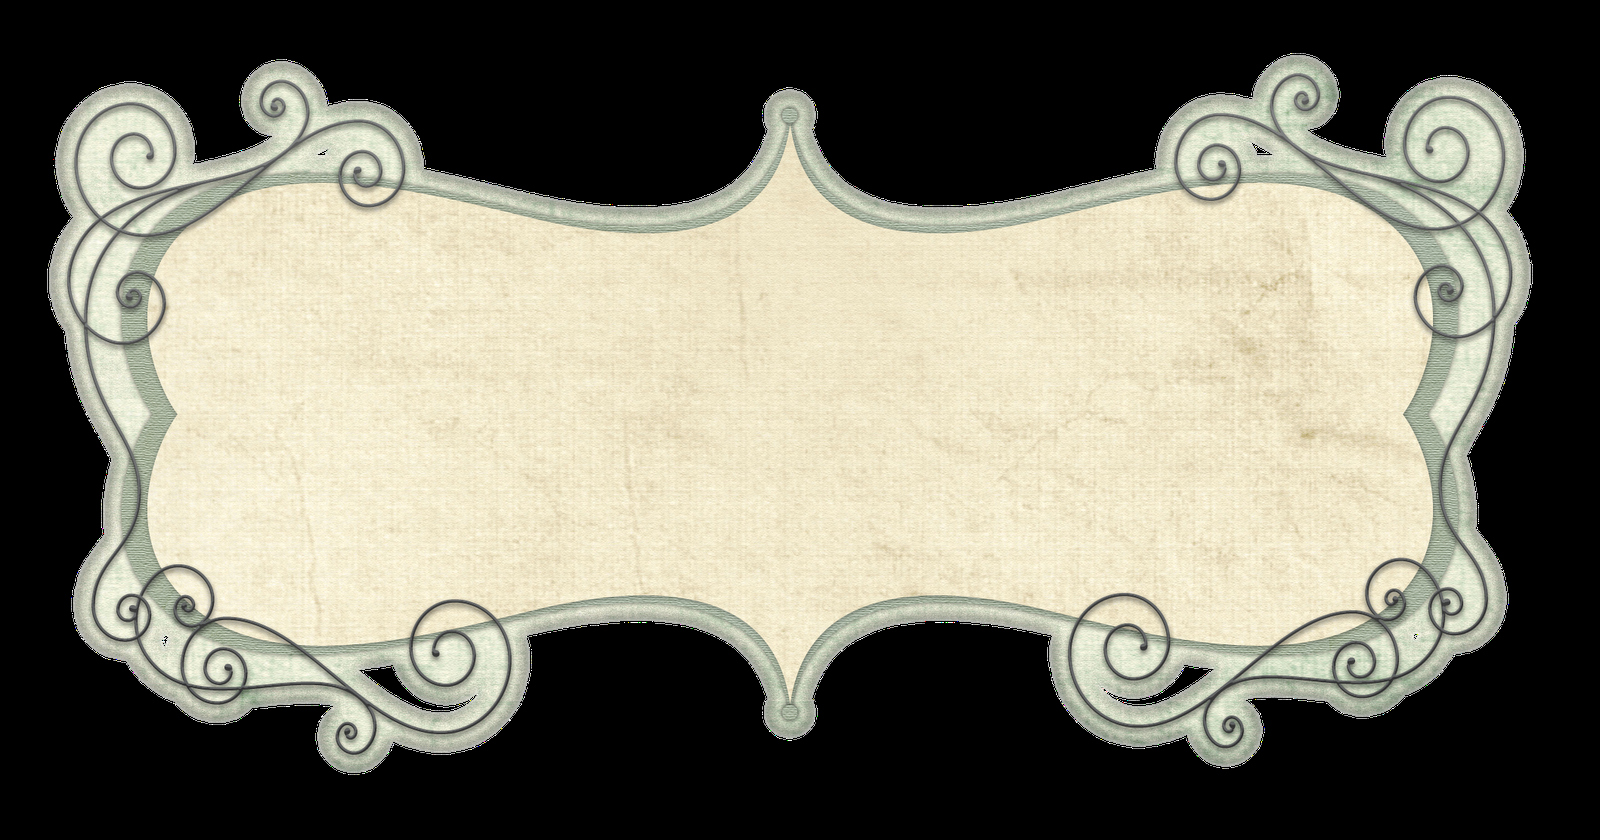 18 Free Frames and Borders Shop Templates